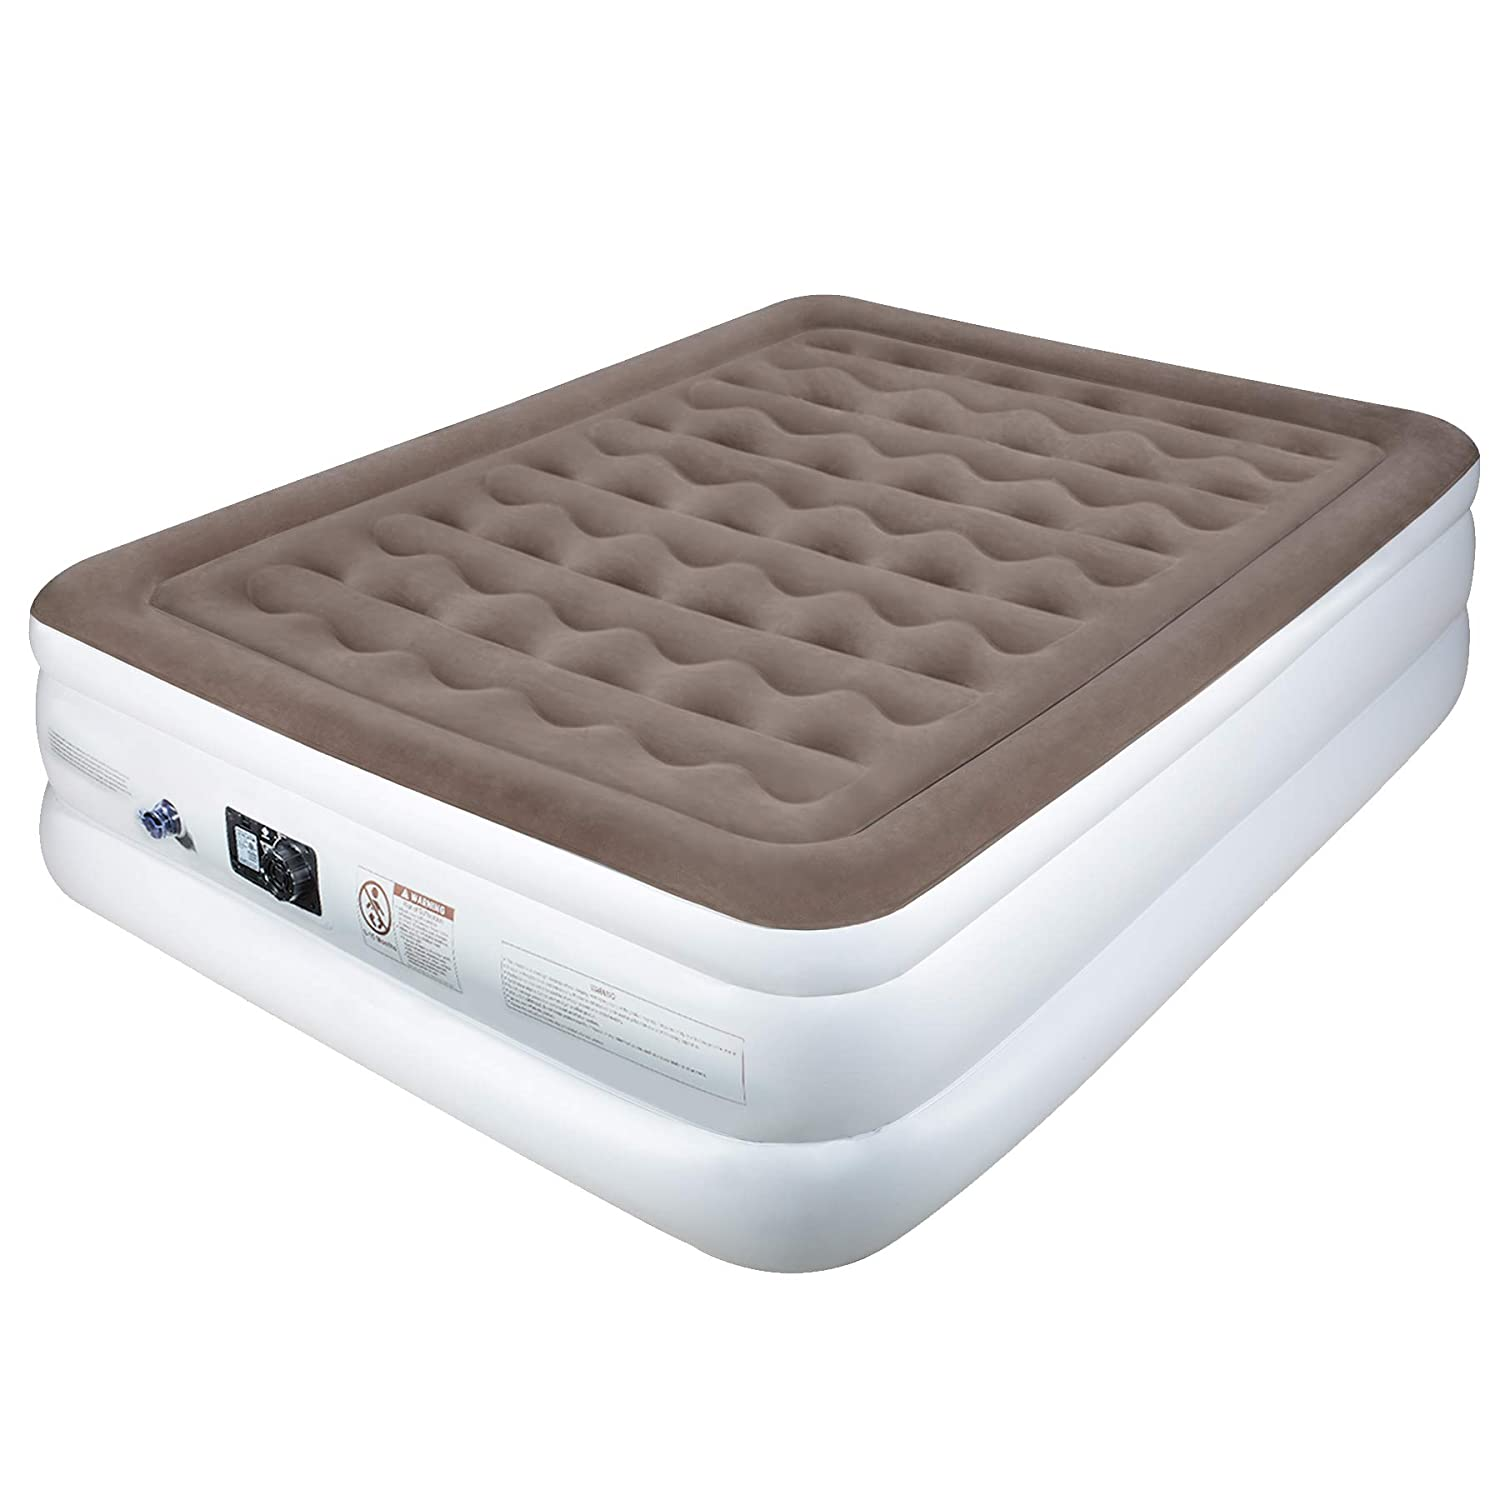 Is this a mattress, or a delicious frozen snack?